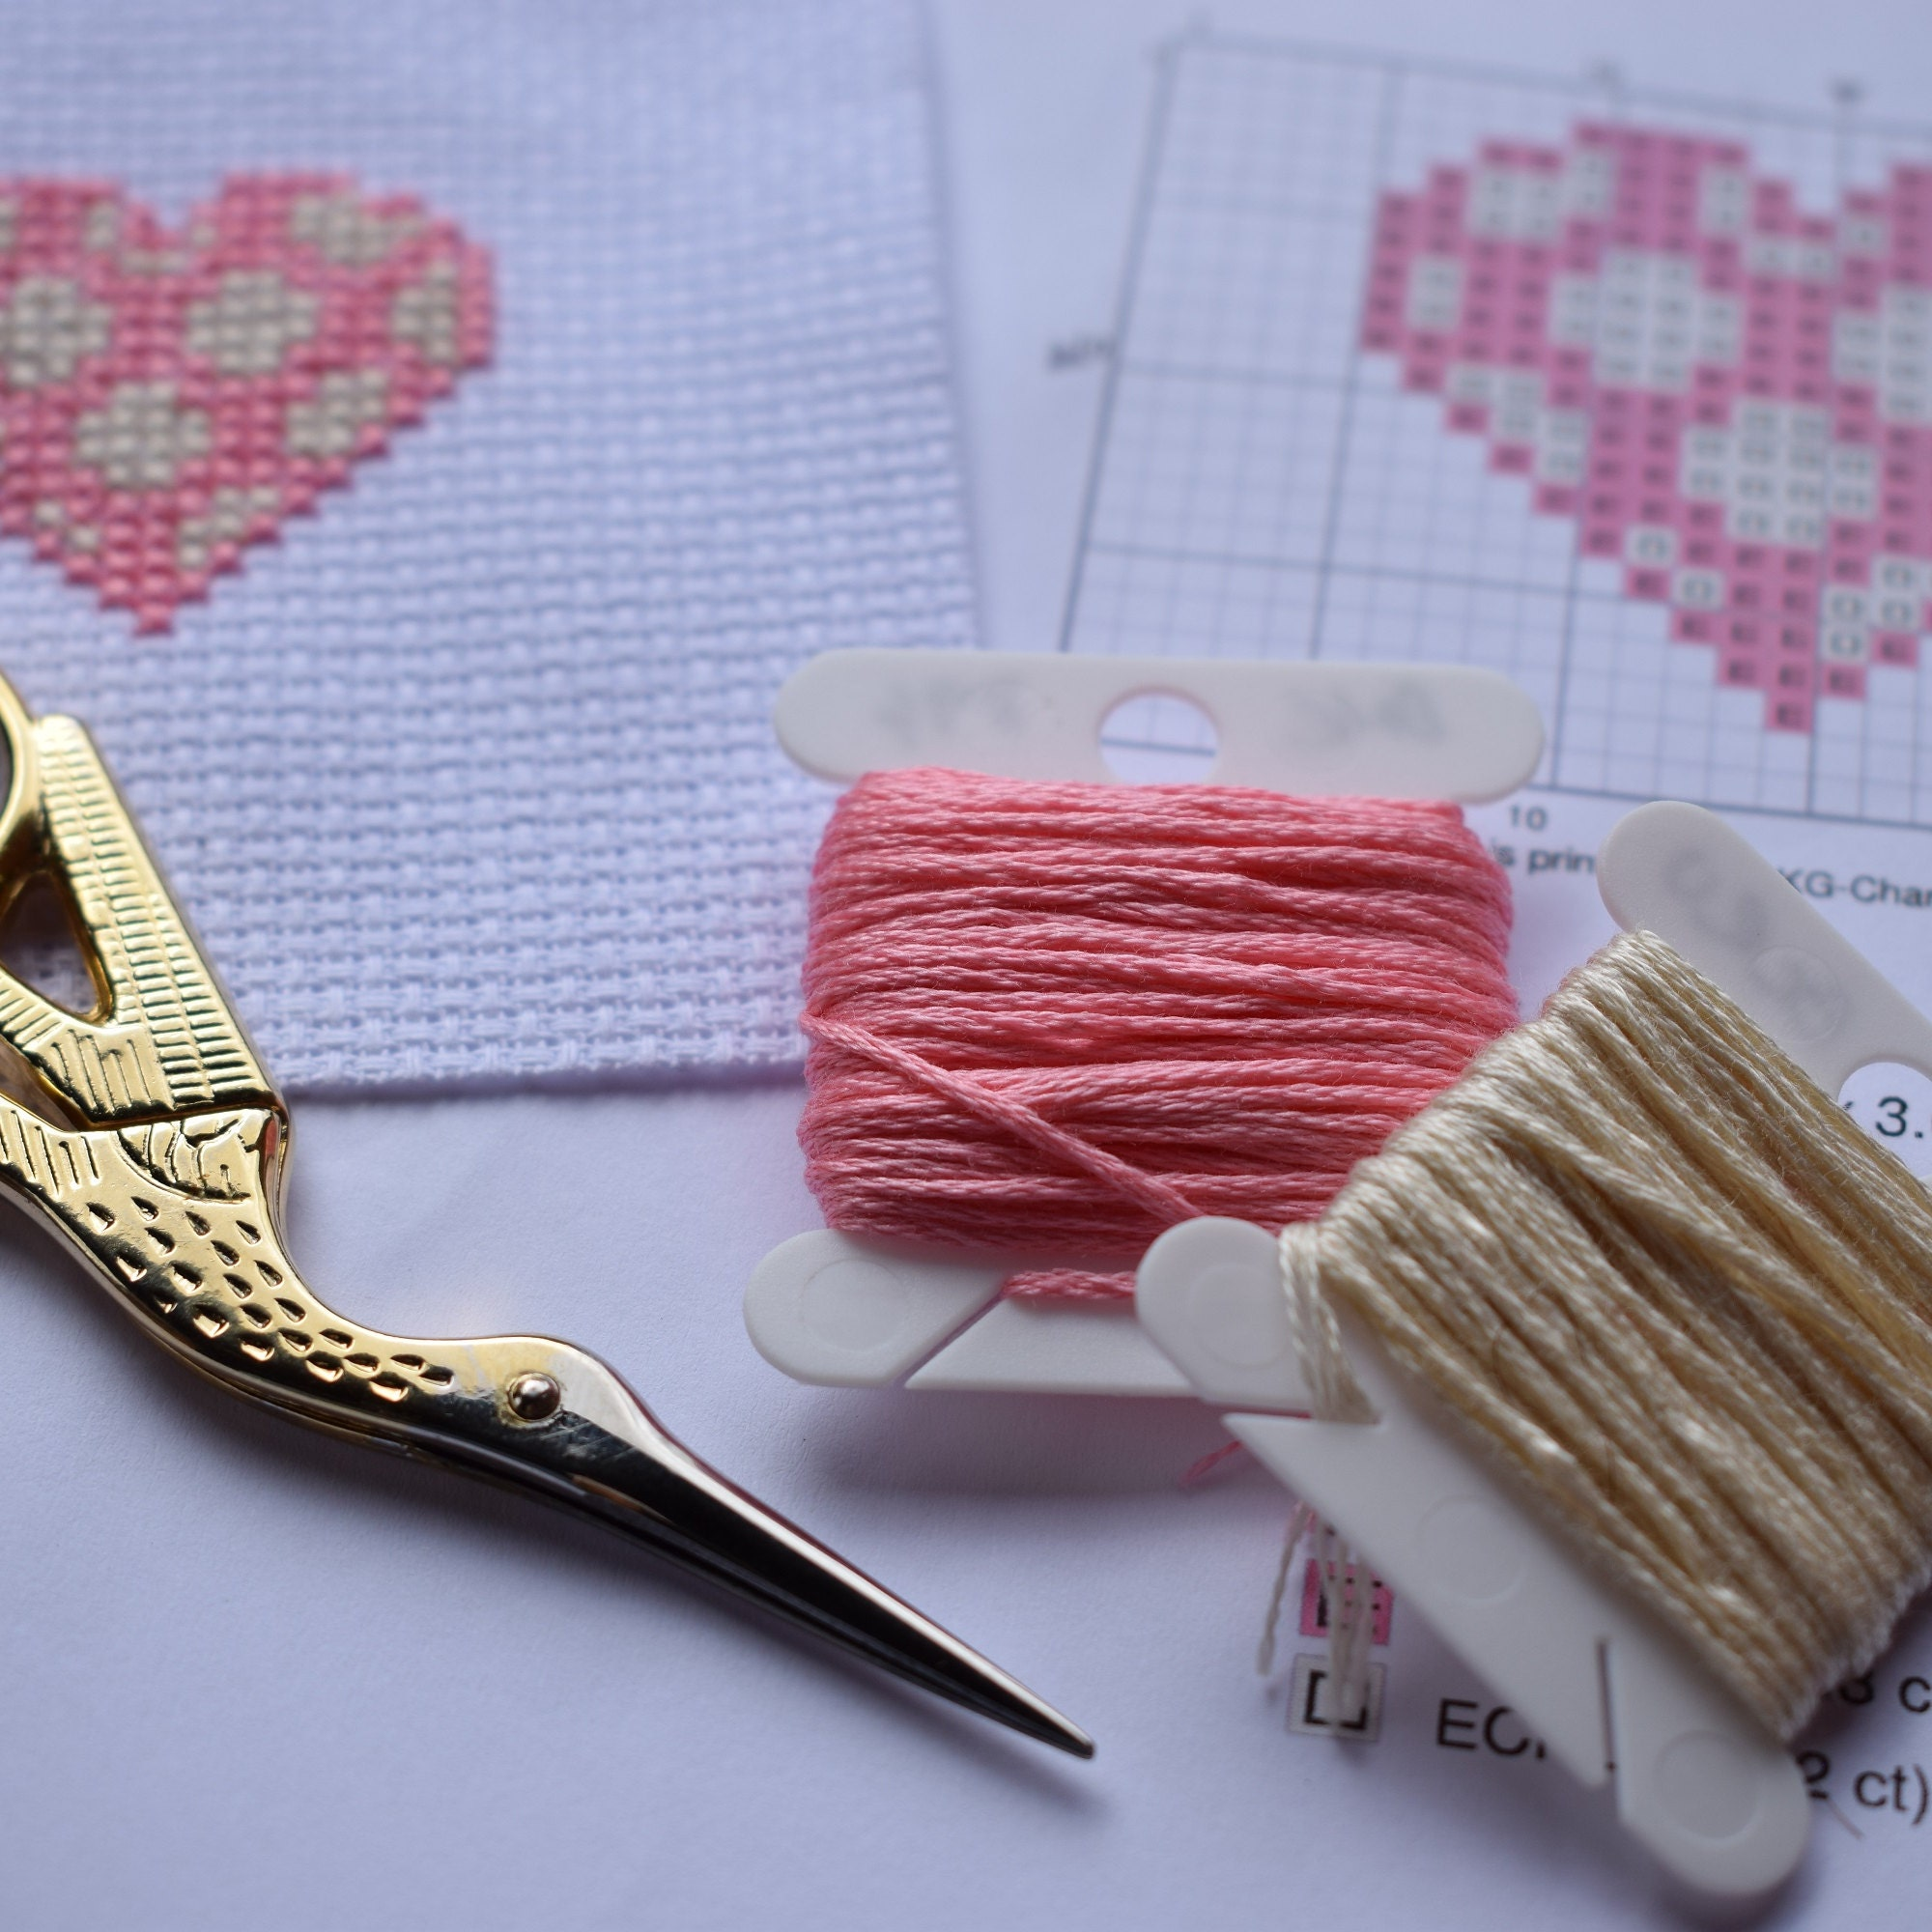 Modern cross stitch patterns and crafts by CraftwithCartwright